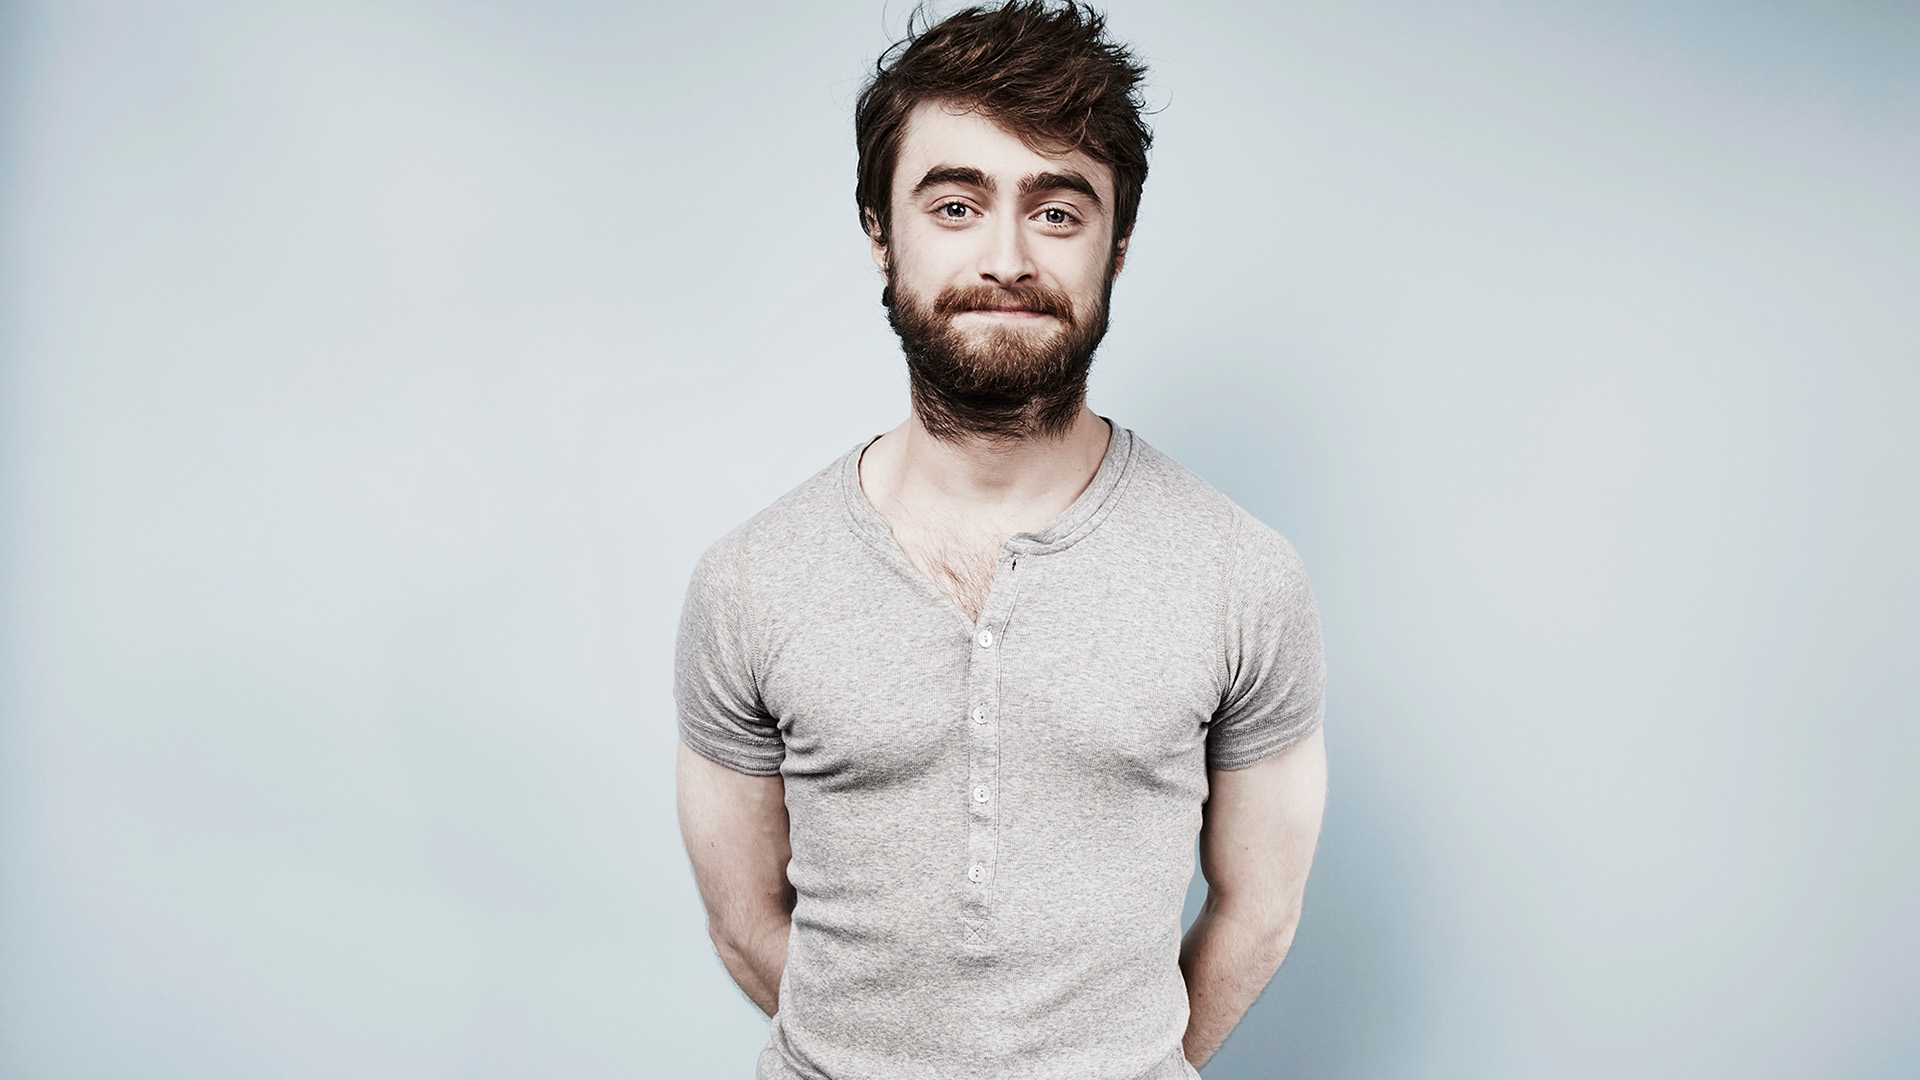 Daniel Radcliffe British Actor, Producer